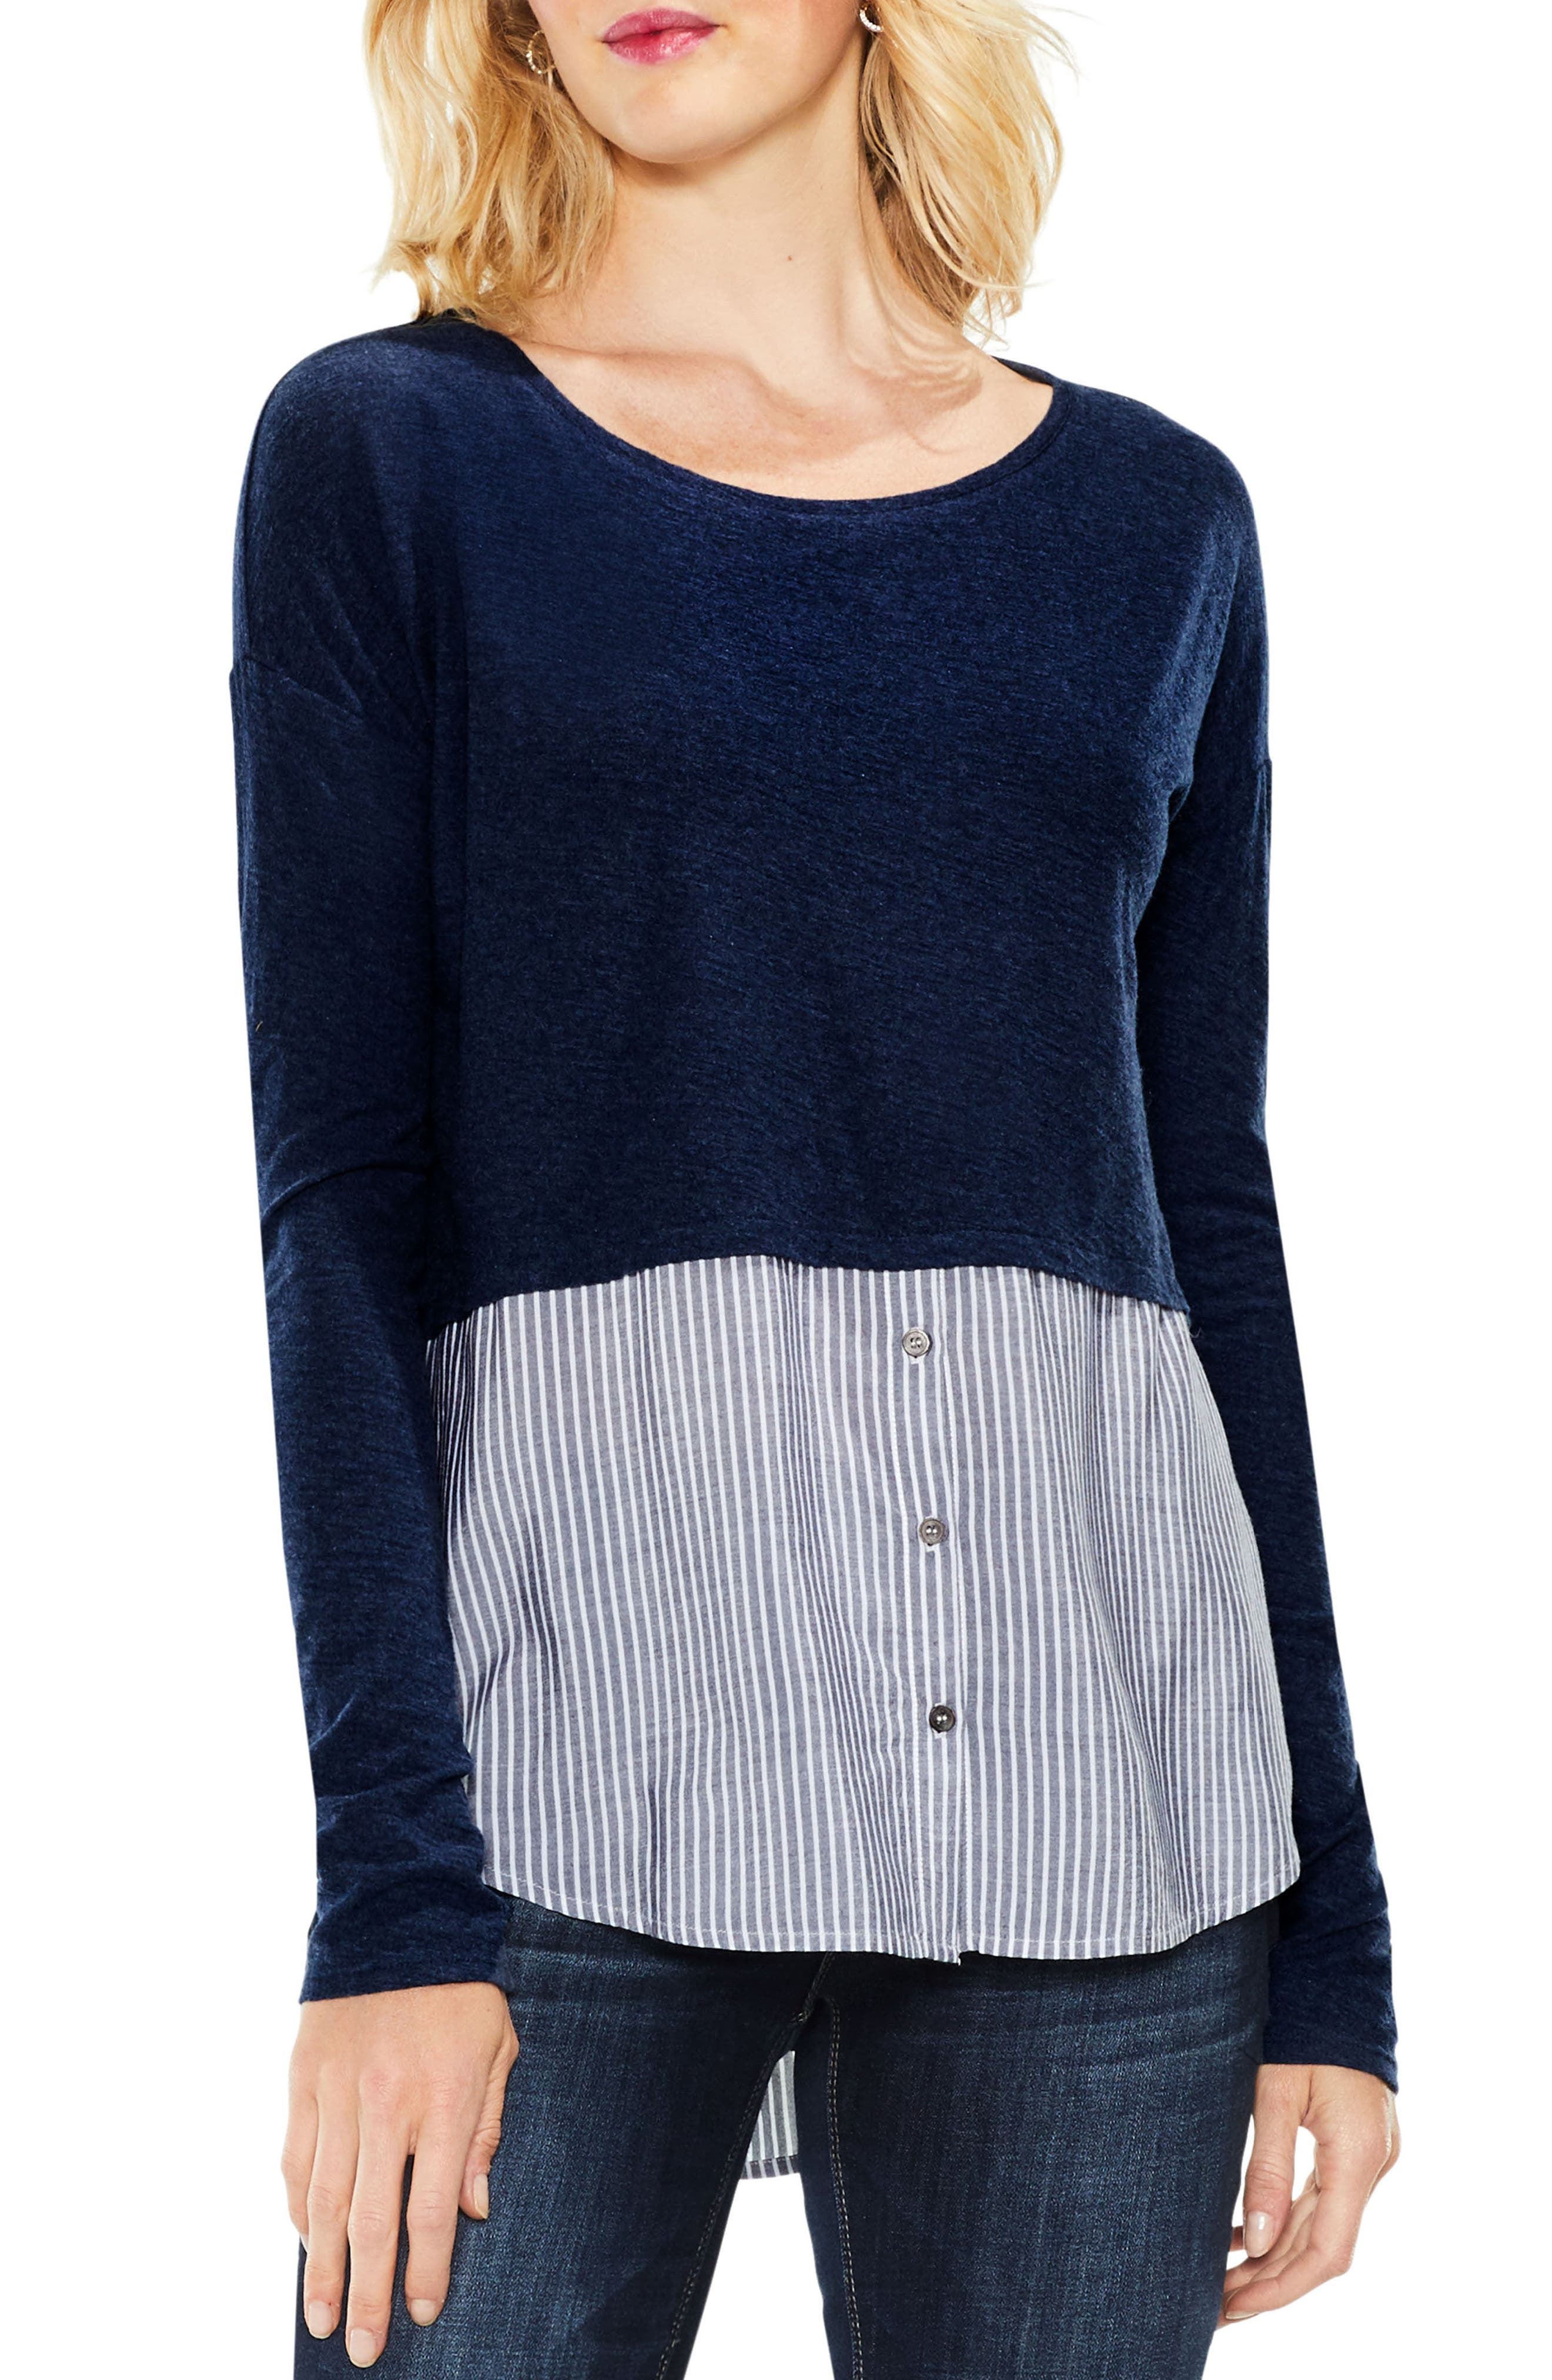 Alternate Image 1 Selected - Two by Vince Camuto Mix Media Shirttail Hem Top (Regular & Petite)